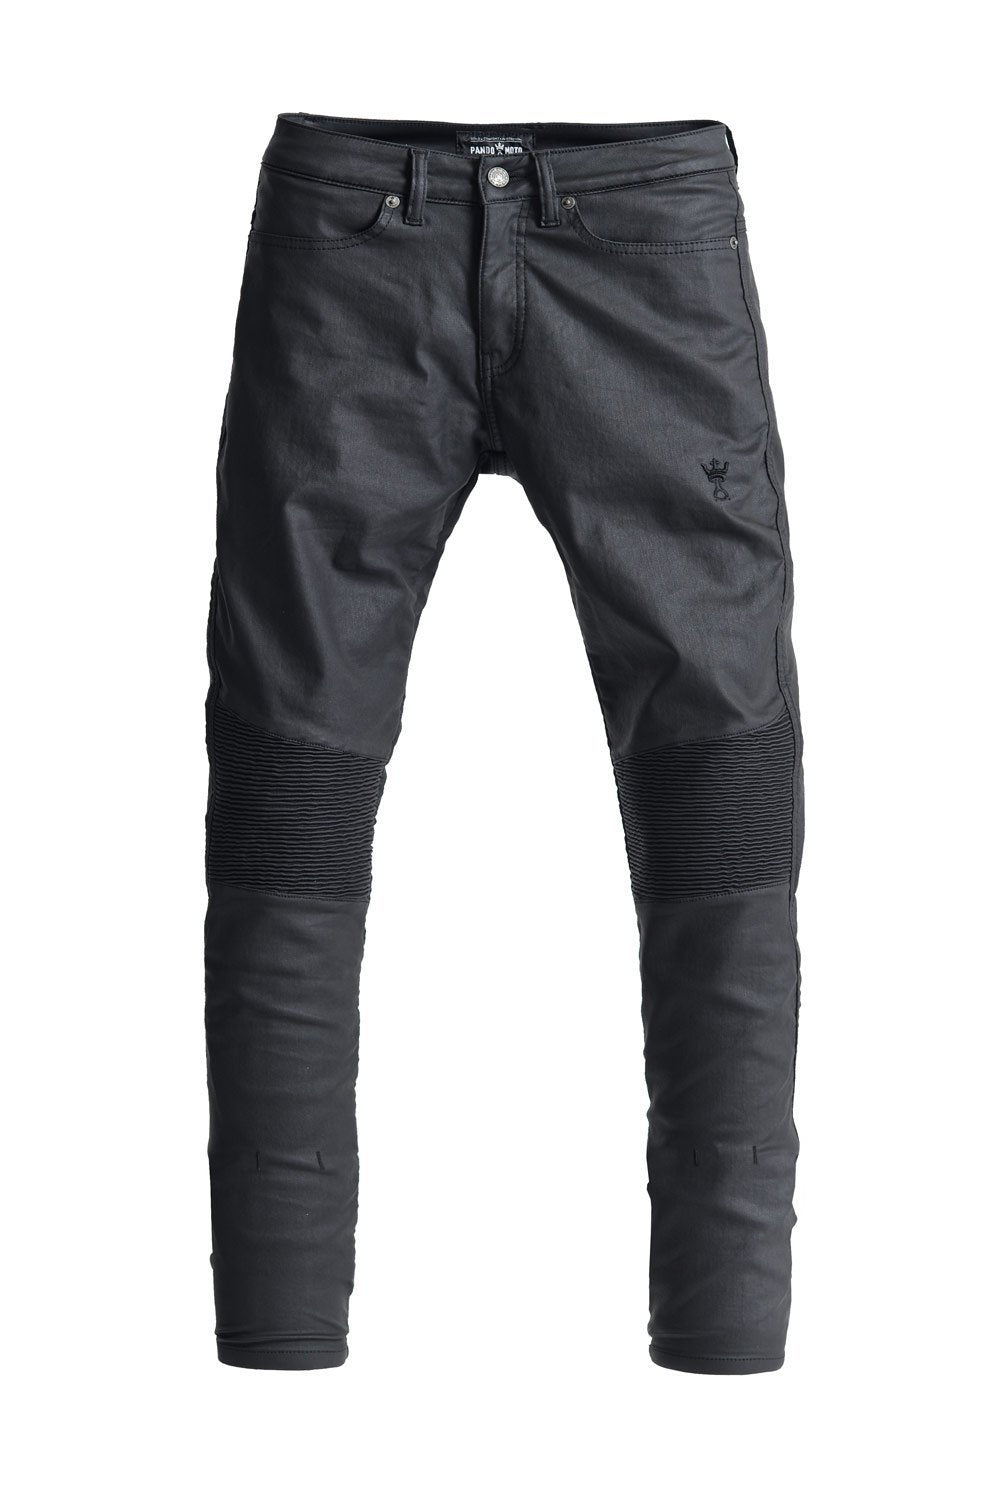 Pando Moto - Pando Moto Kusari Ladies Black Jeans - Ladies Trousers - Salt Flats Clothing